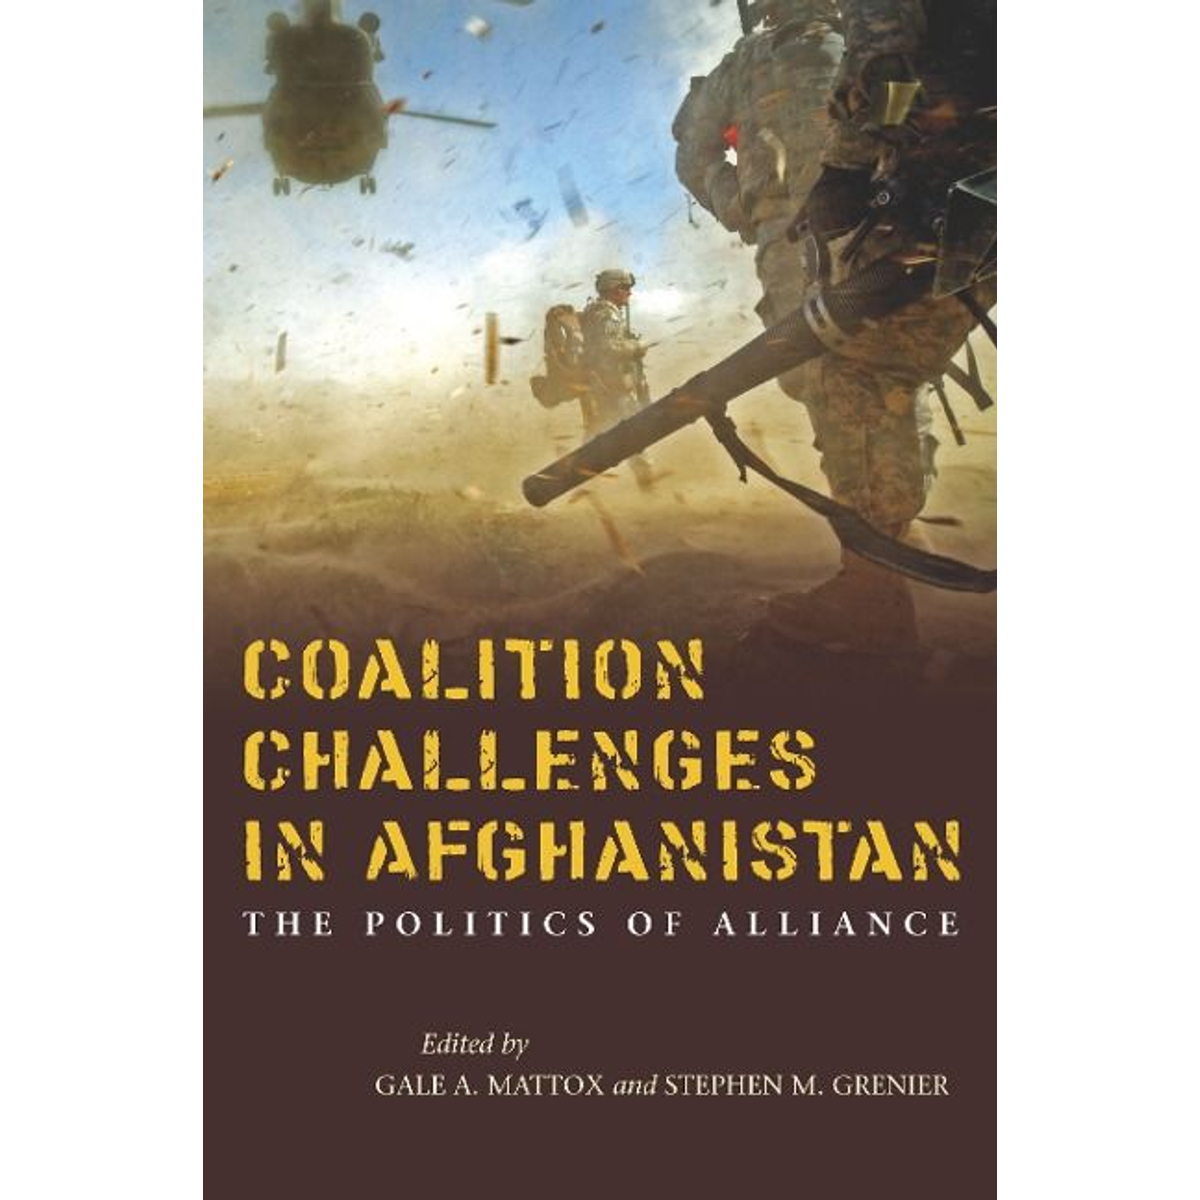 Coalition Challenges in Afghanistan